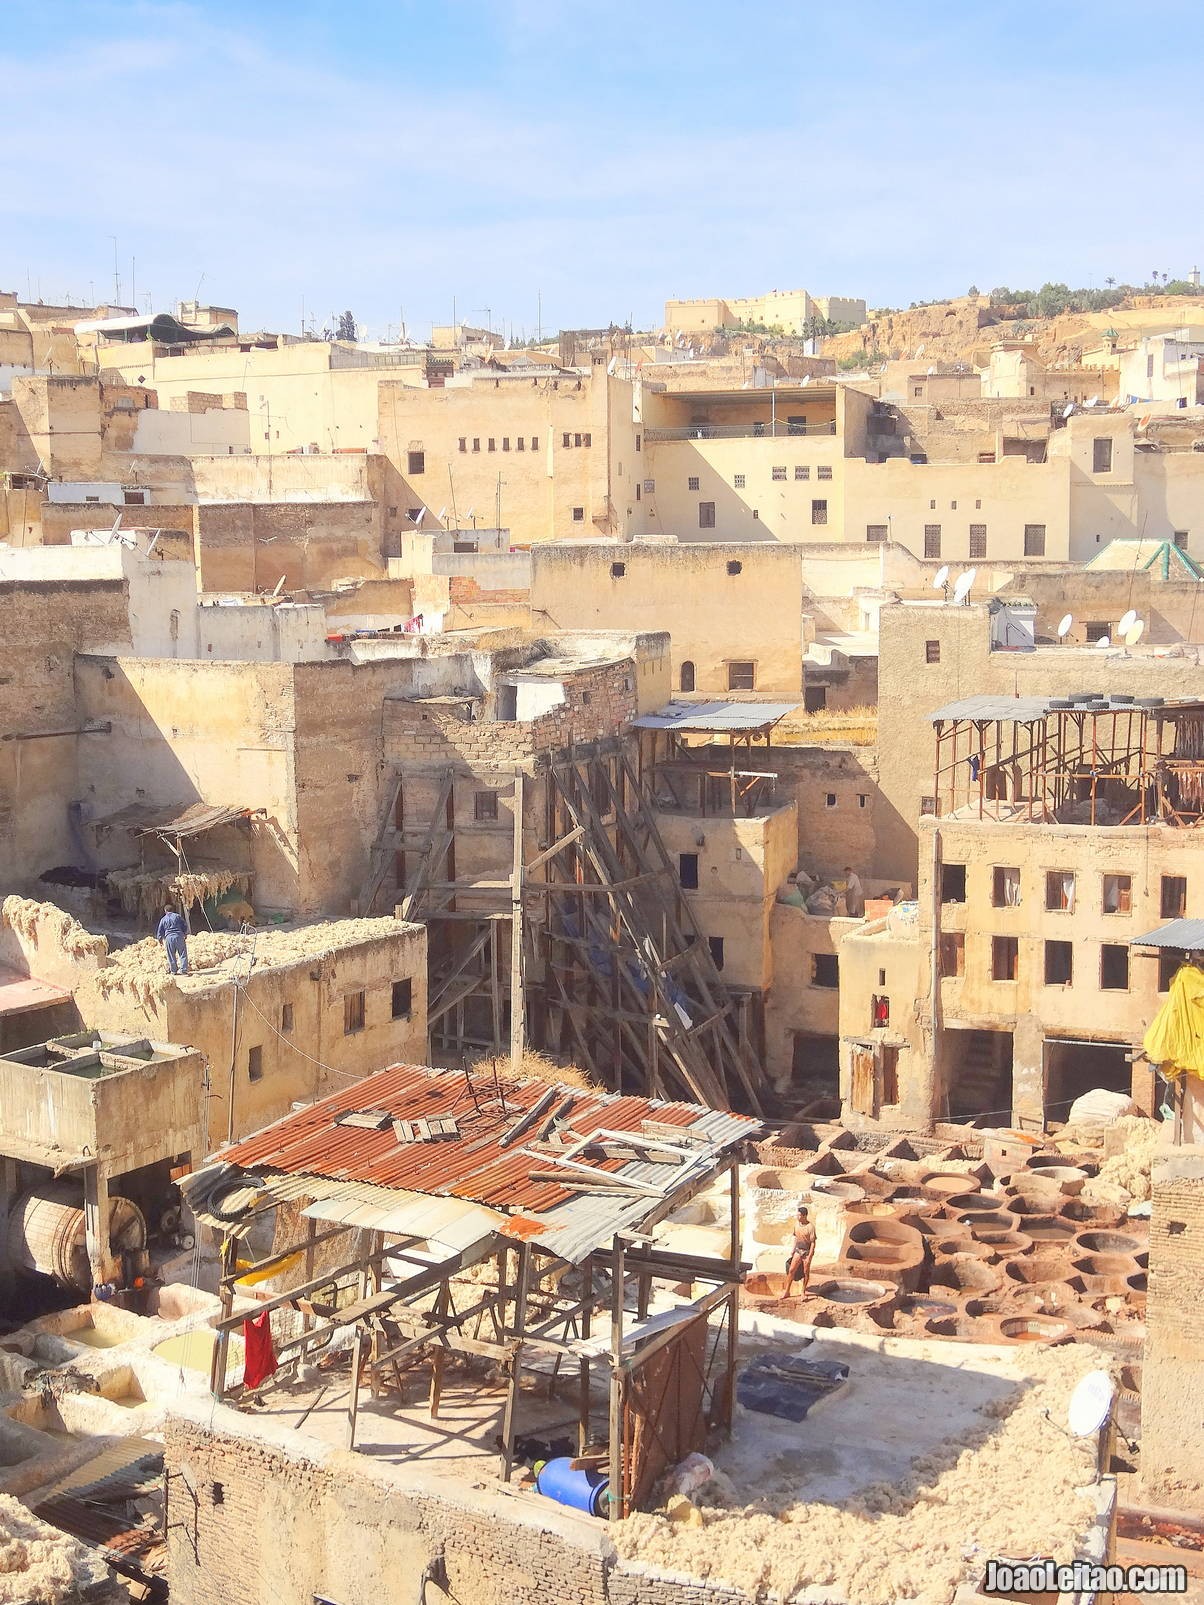 The Fez Tanneries